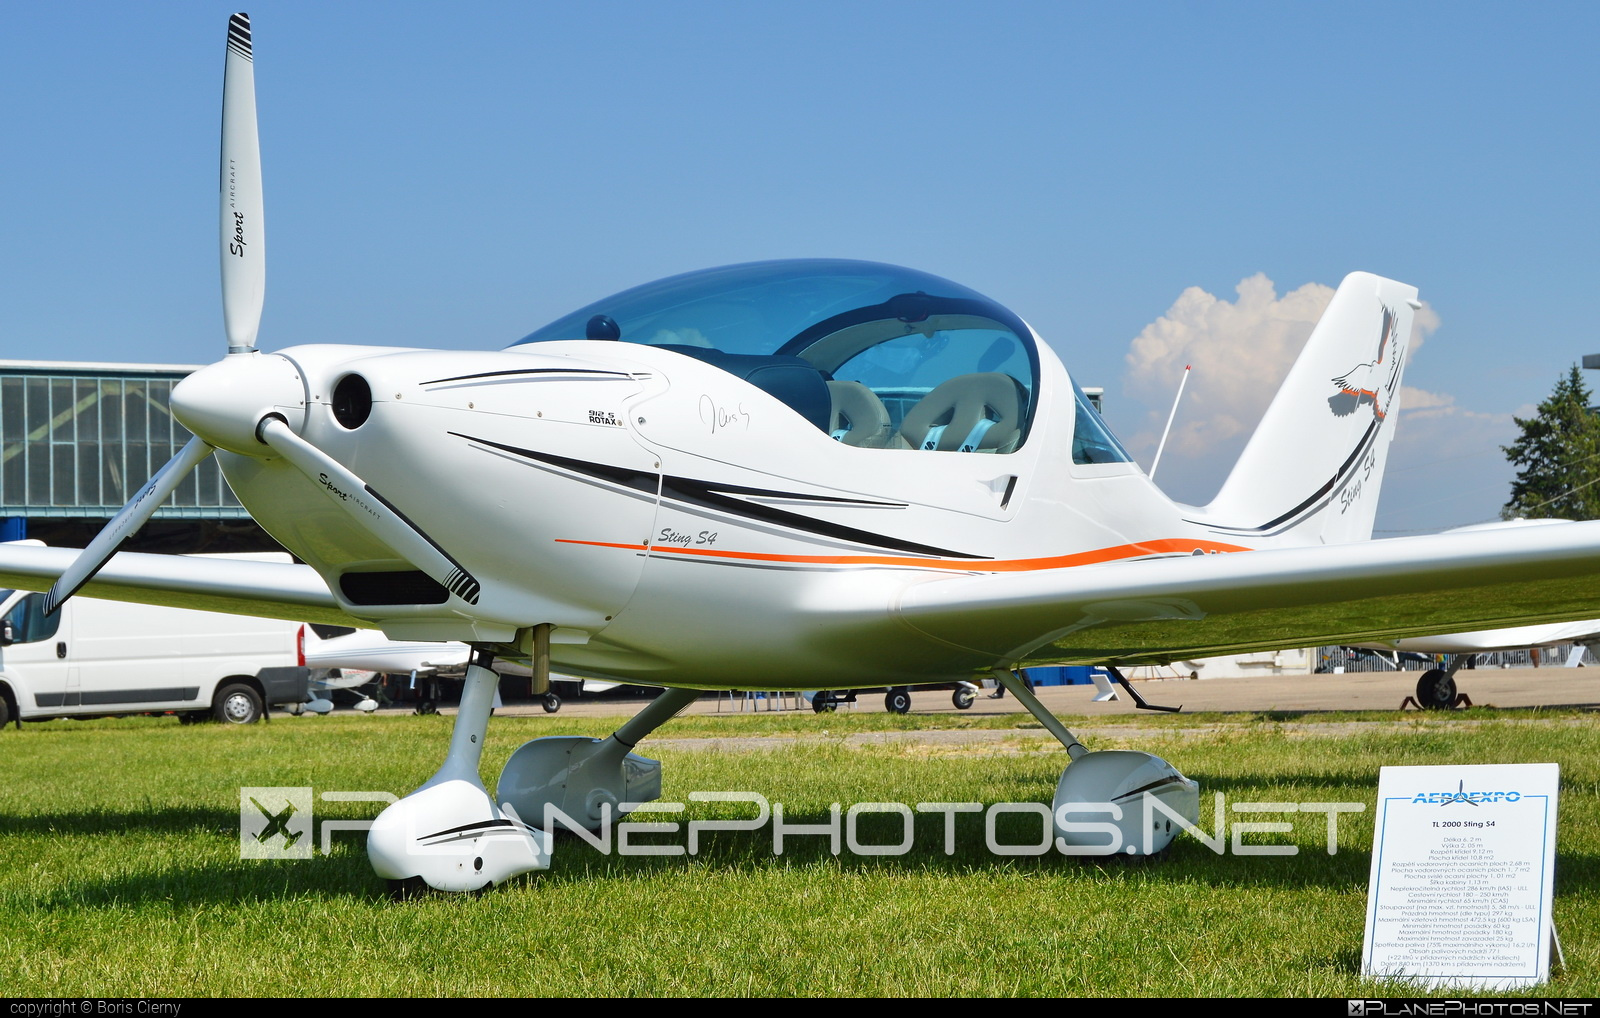 TL-Ultralight TL-2000 Sting S4 - OK-PUA 69 operated by Private operator